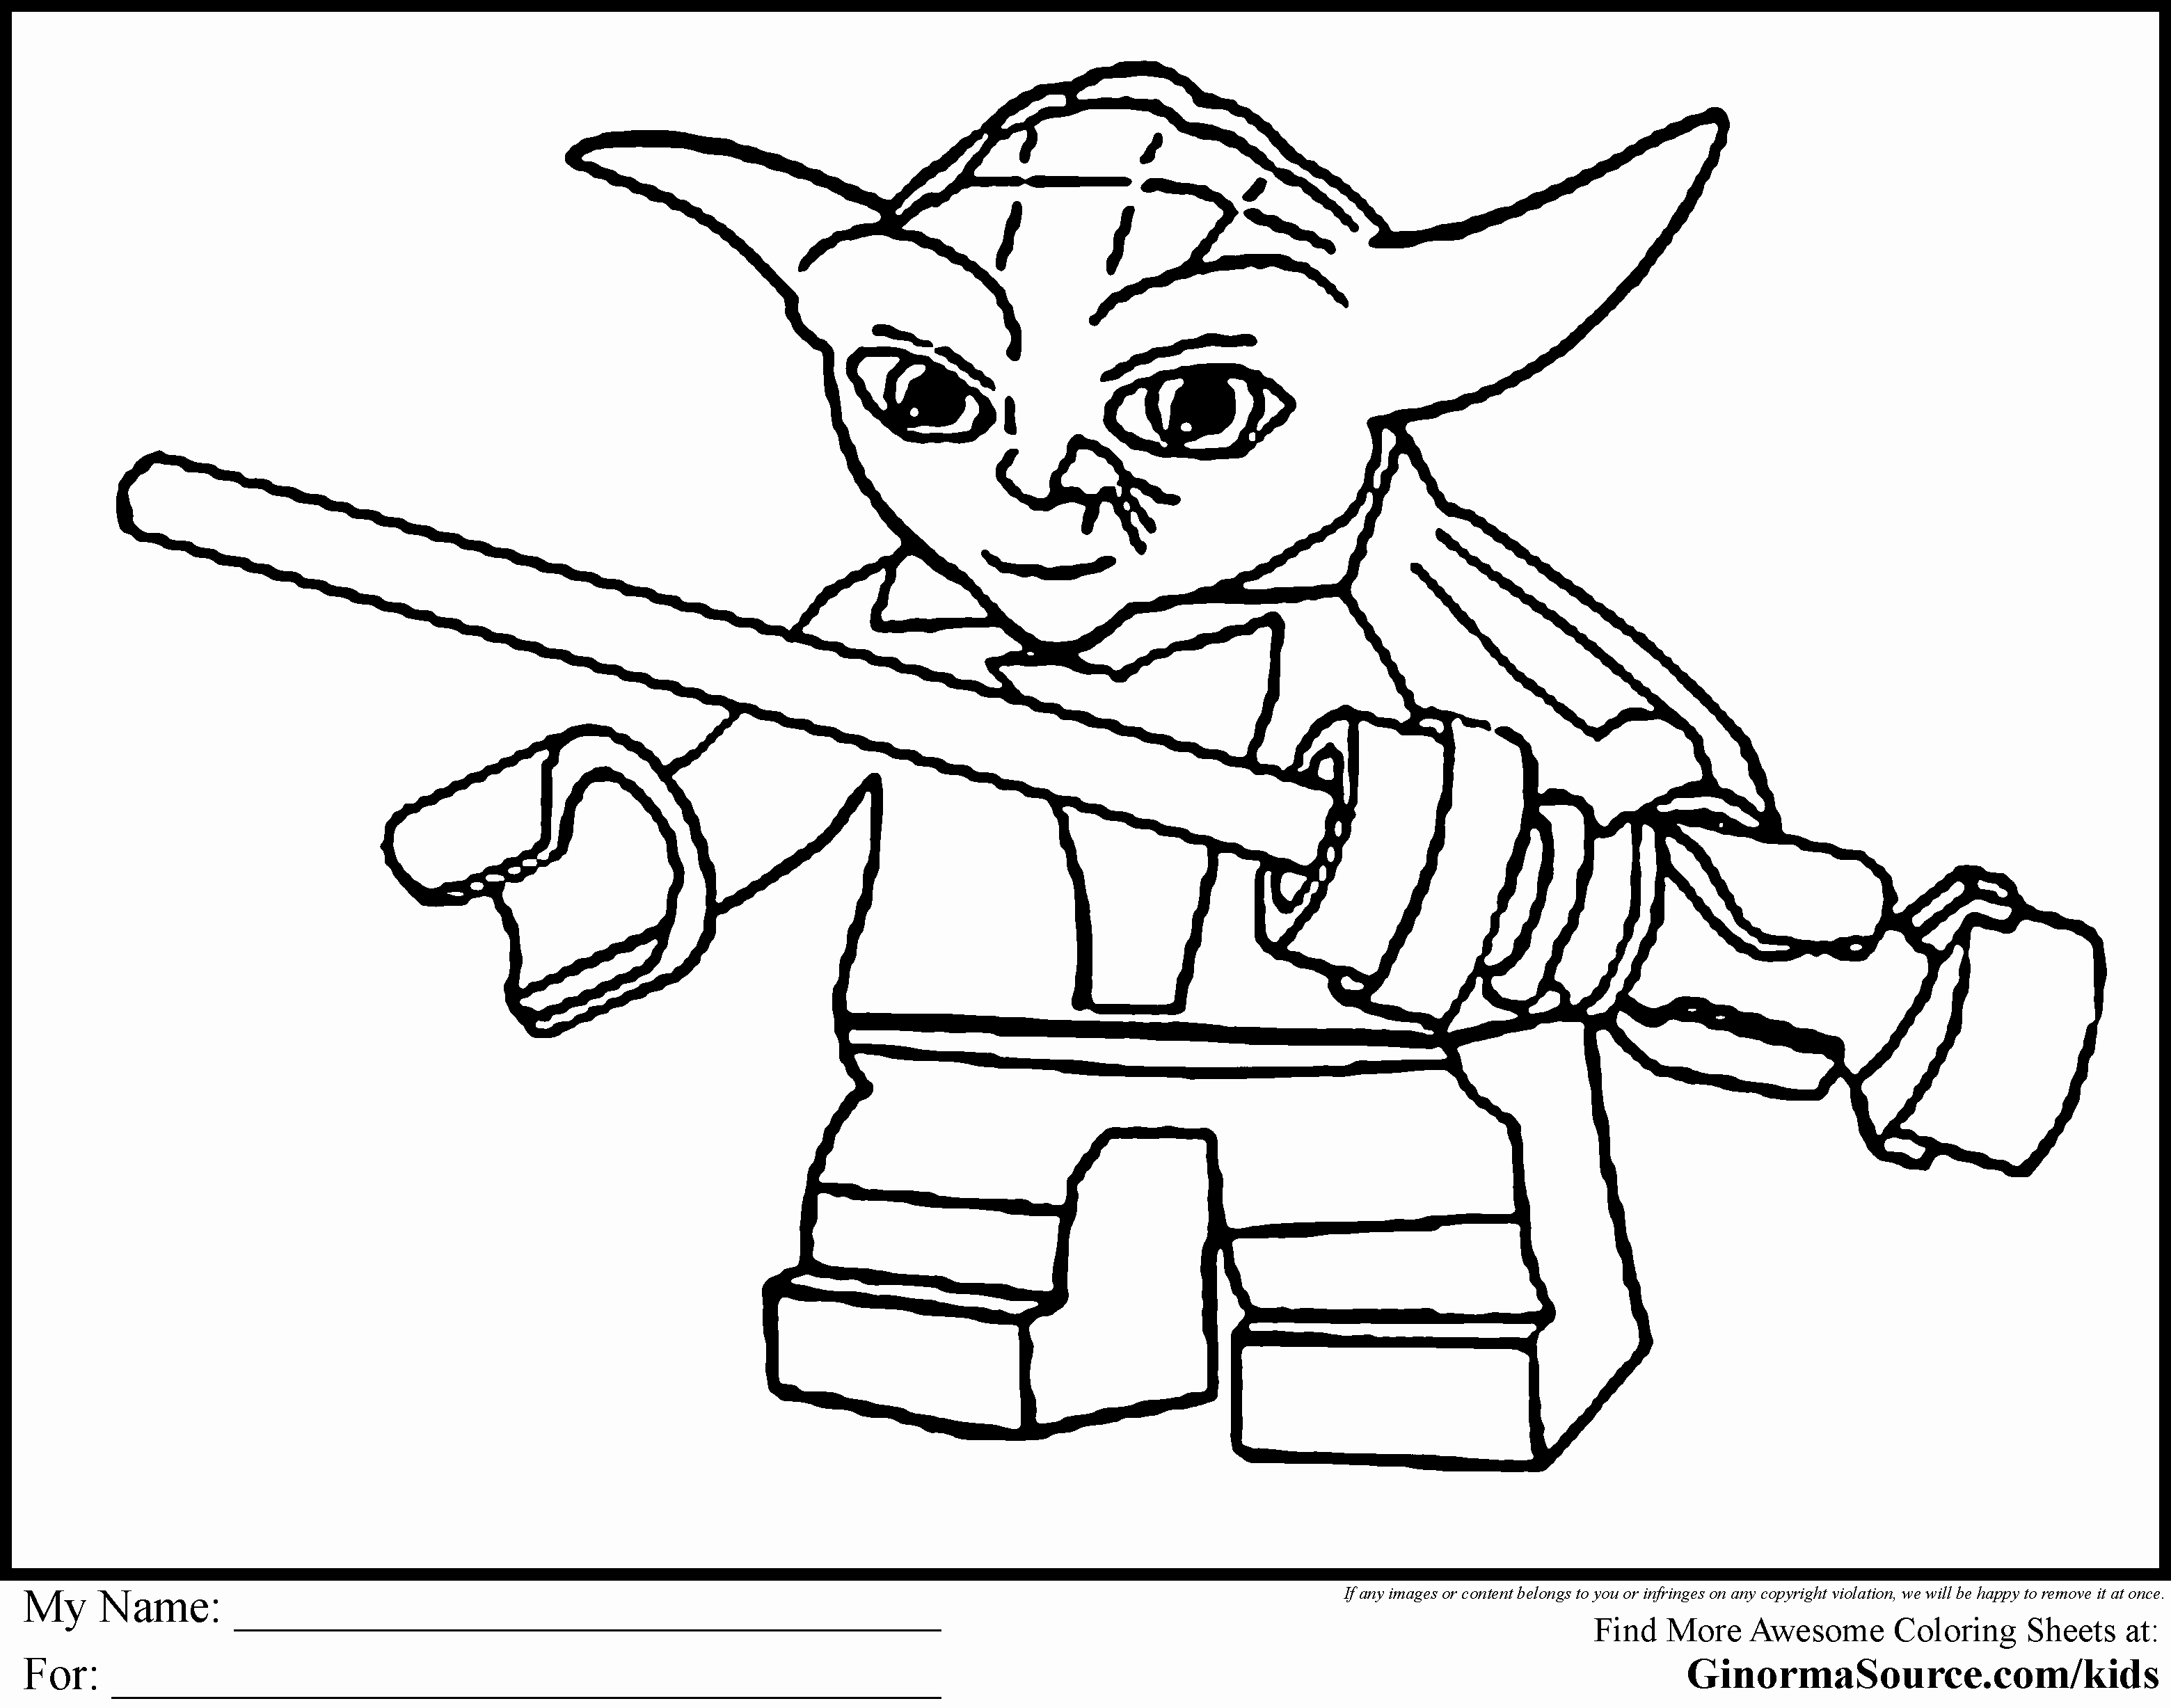 Padme Amidala Coloring Pages